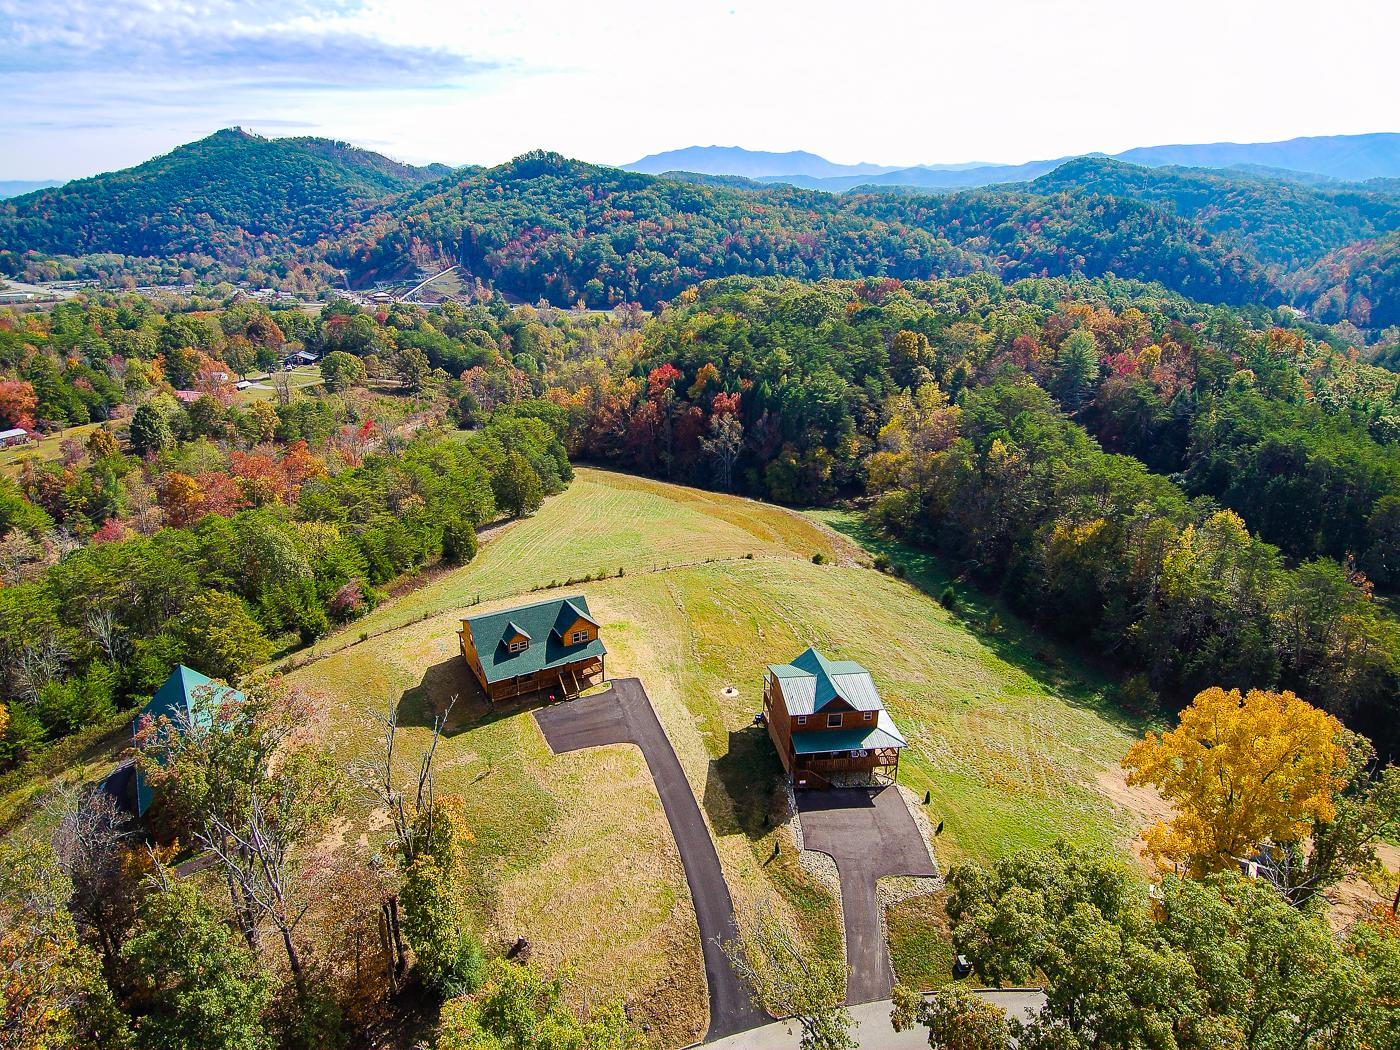 Welcome to Sevierville! Comprised of 2 homes, this Smoky Mountain basecamp is professionally managed by TurnKey Vacation Rentals.